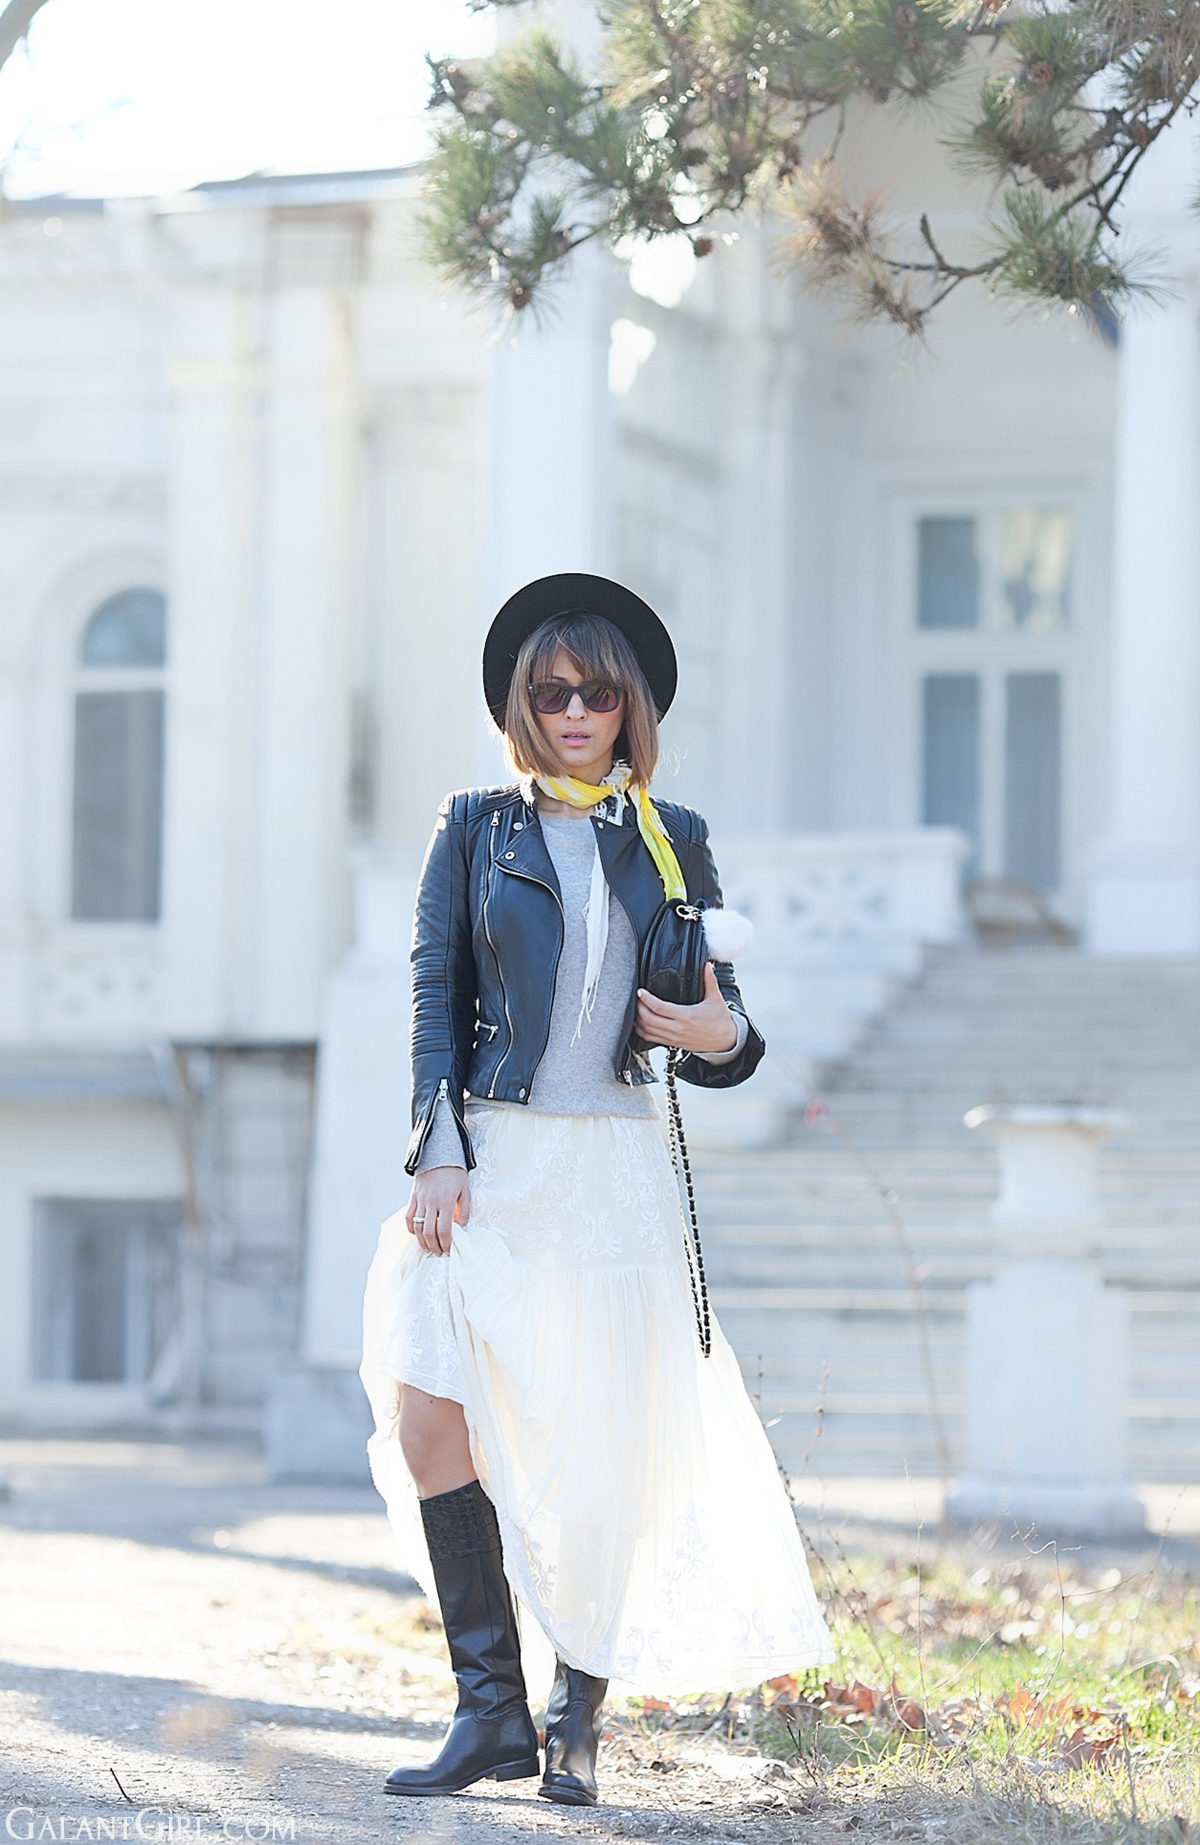 maxi skirt outfit on GalantGirl.com